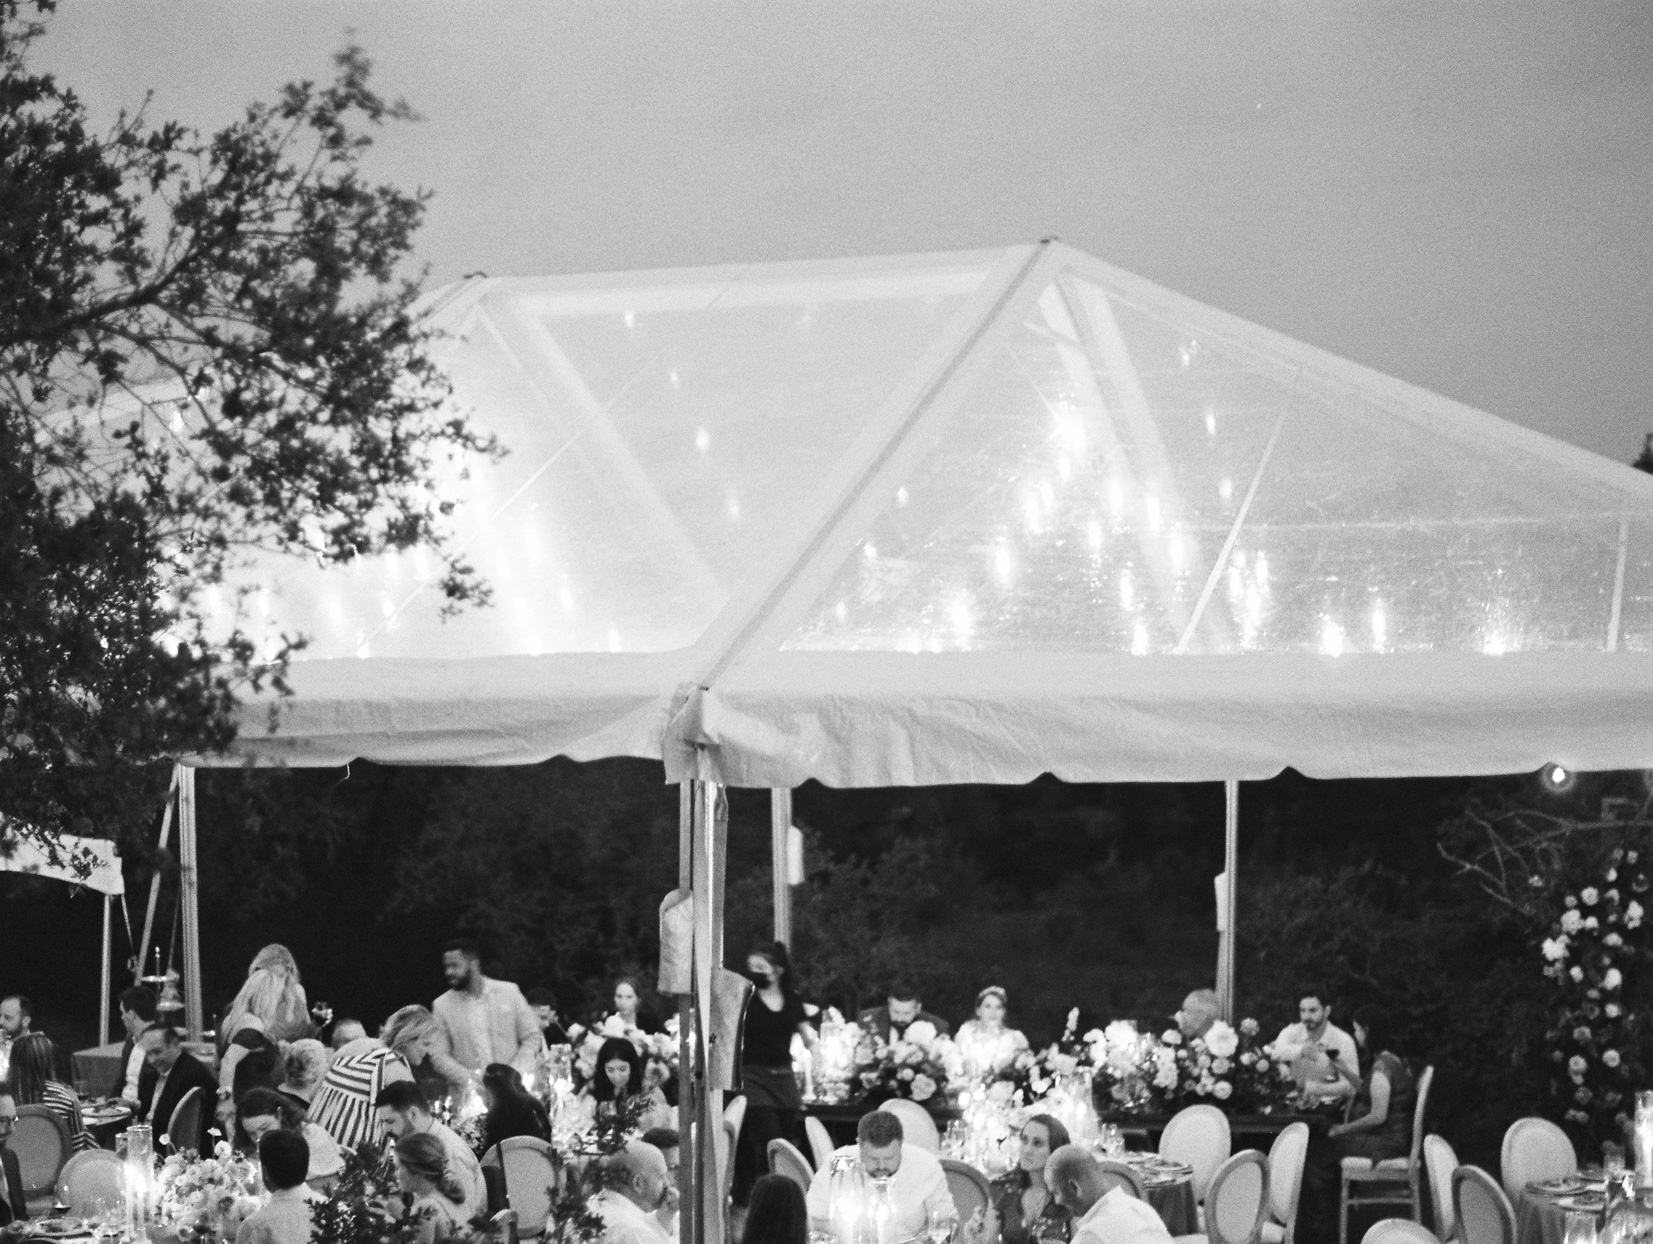 wedding guests under large white reception tent